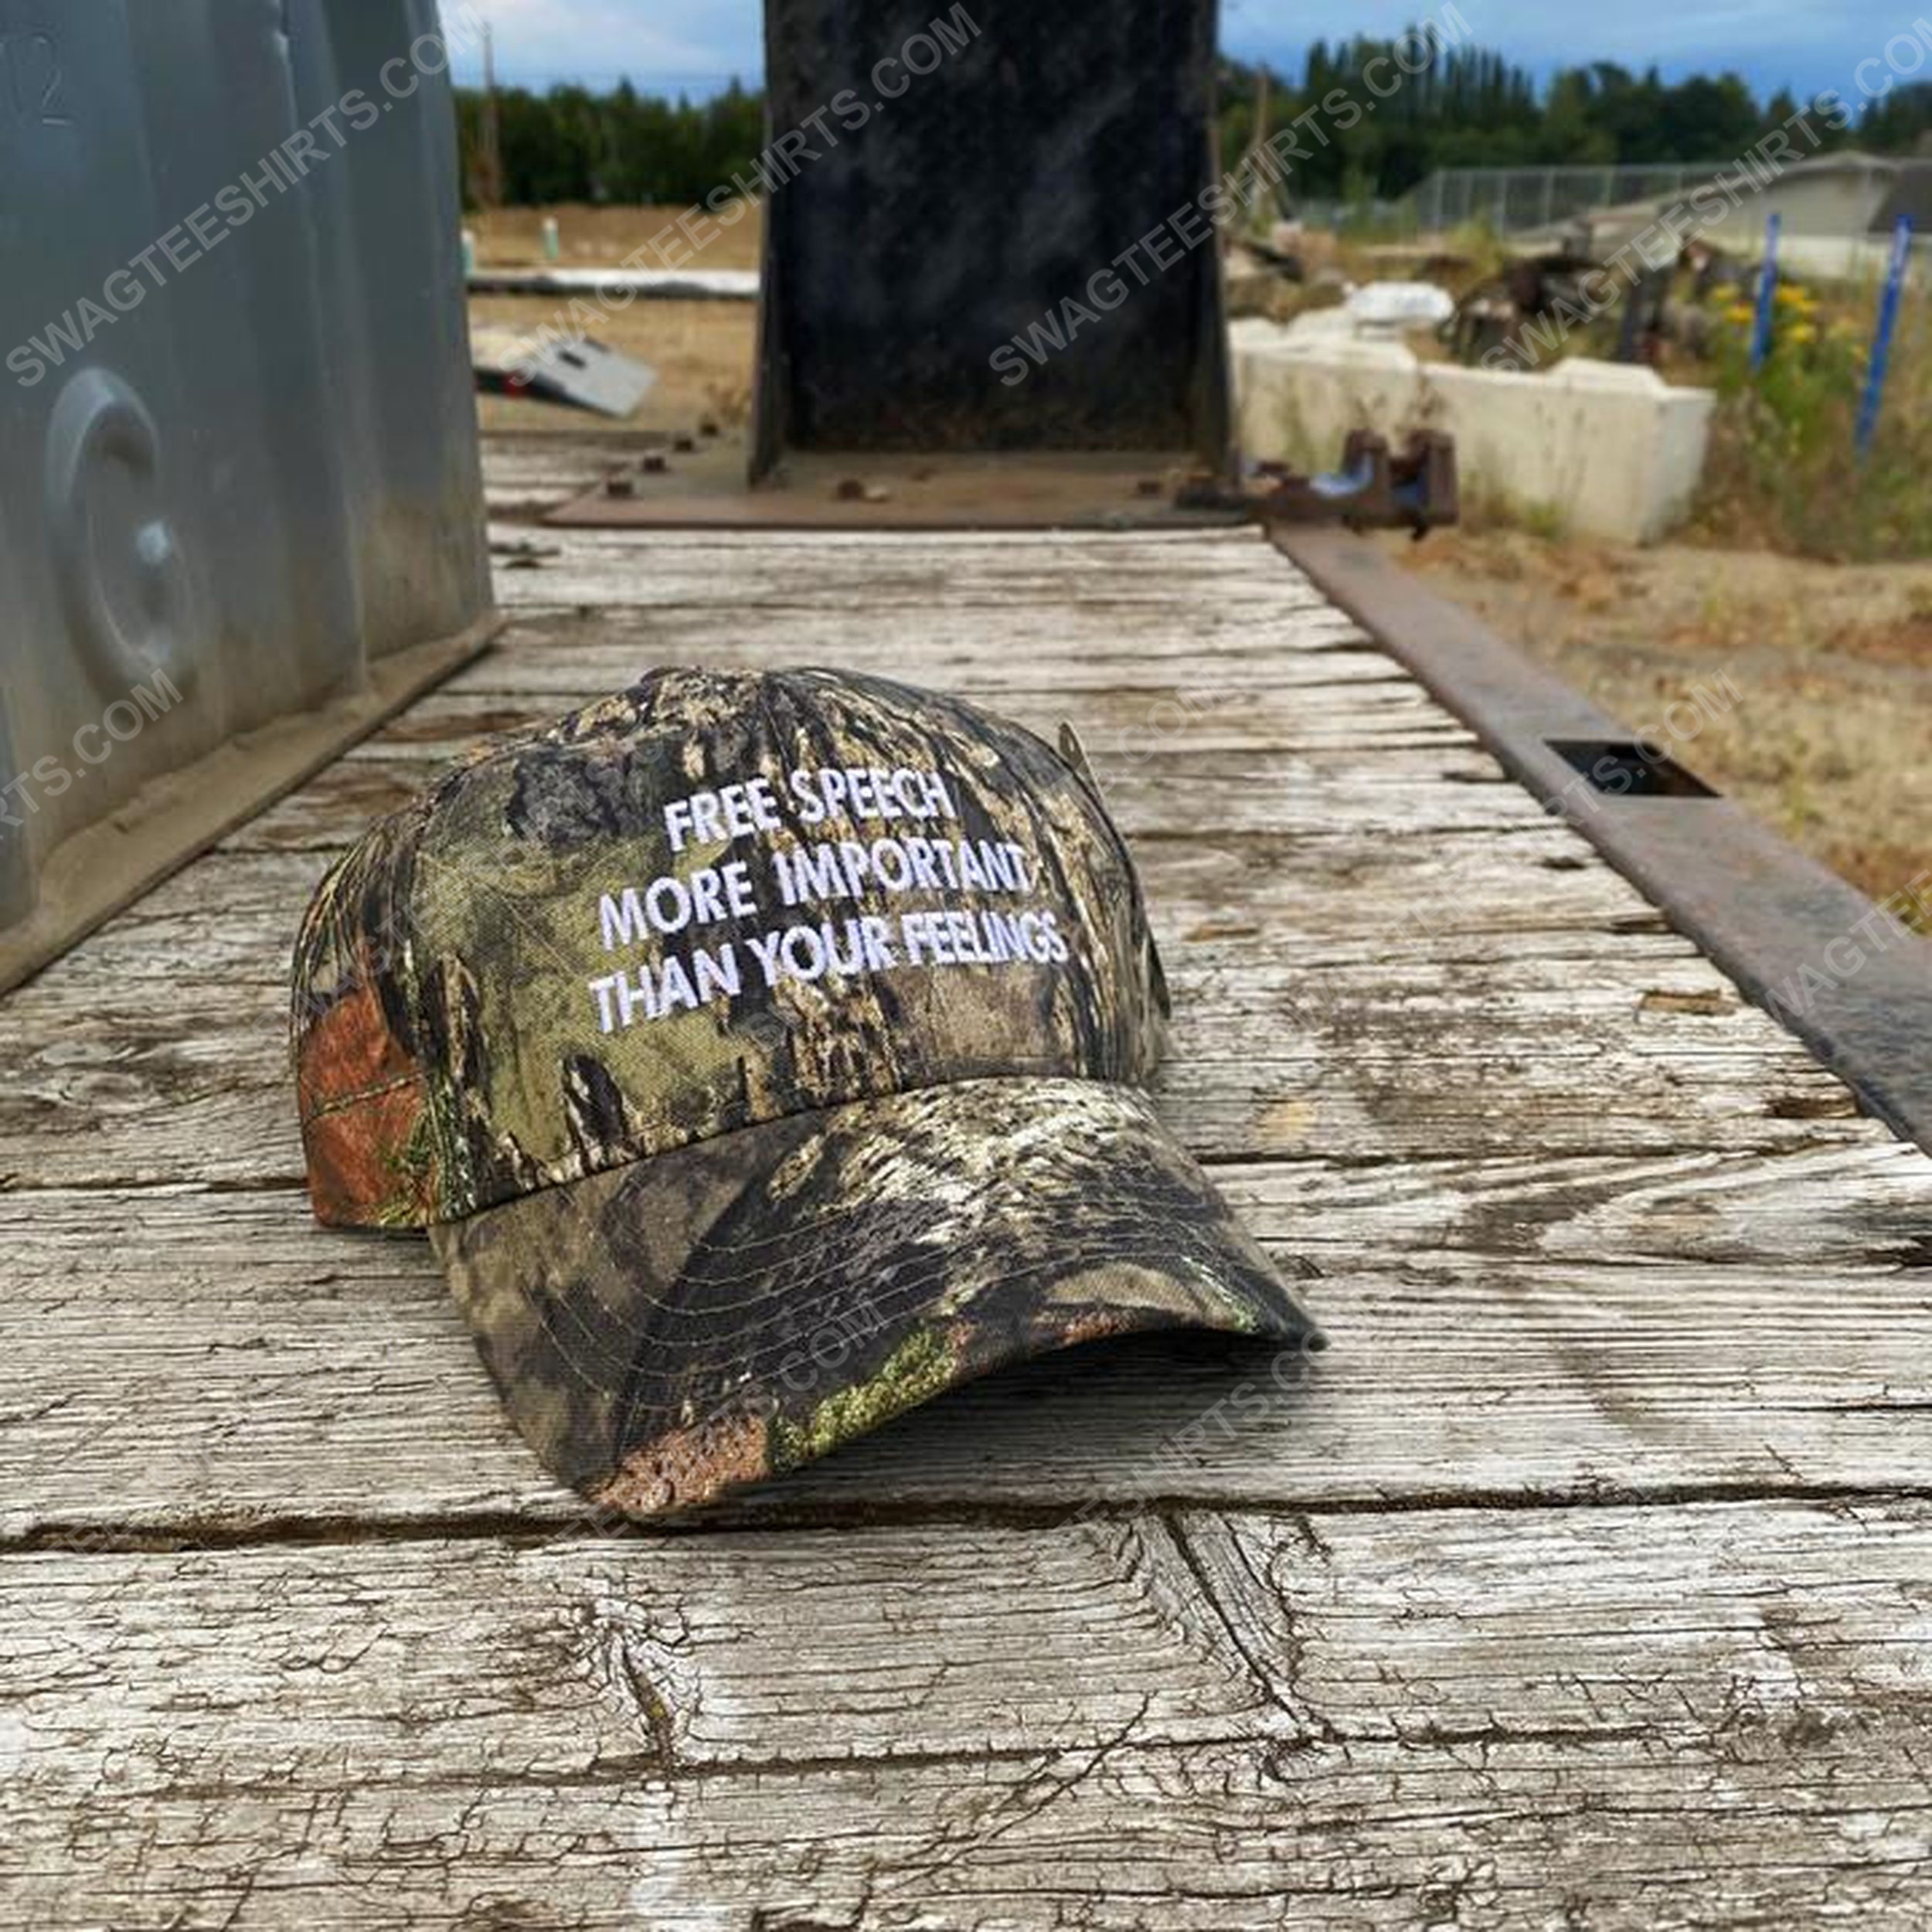 Camo free speech more important than your feelings full print classic hat 1 - Copy (2)